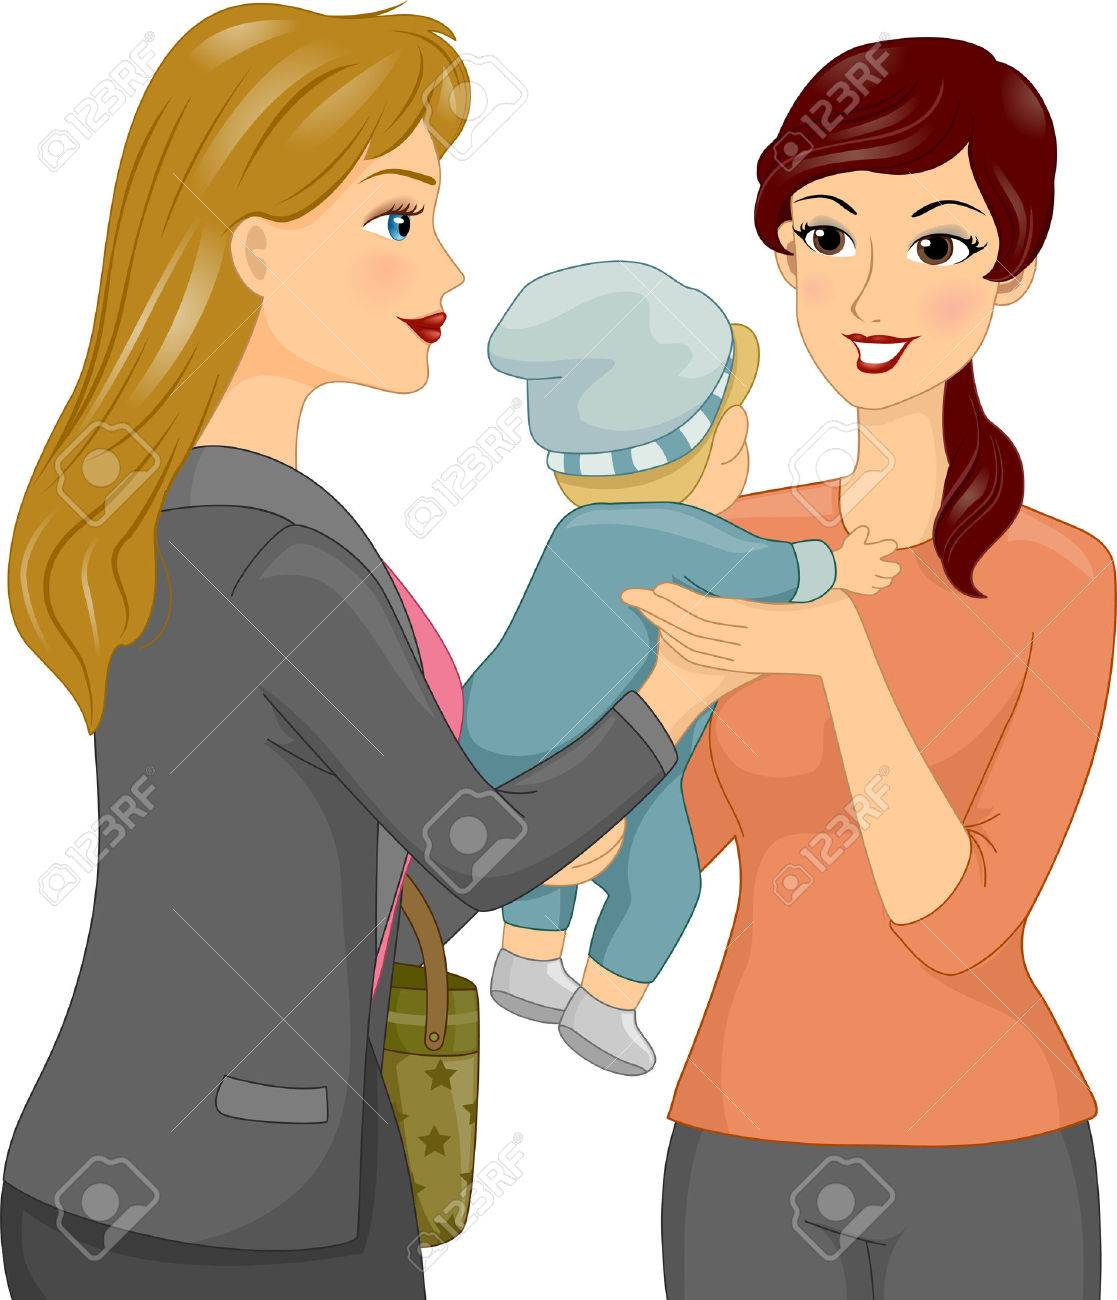 1 094 babysitter cliparts stock vector and royalty free